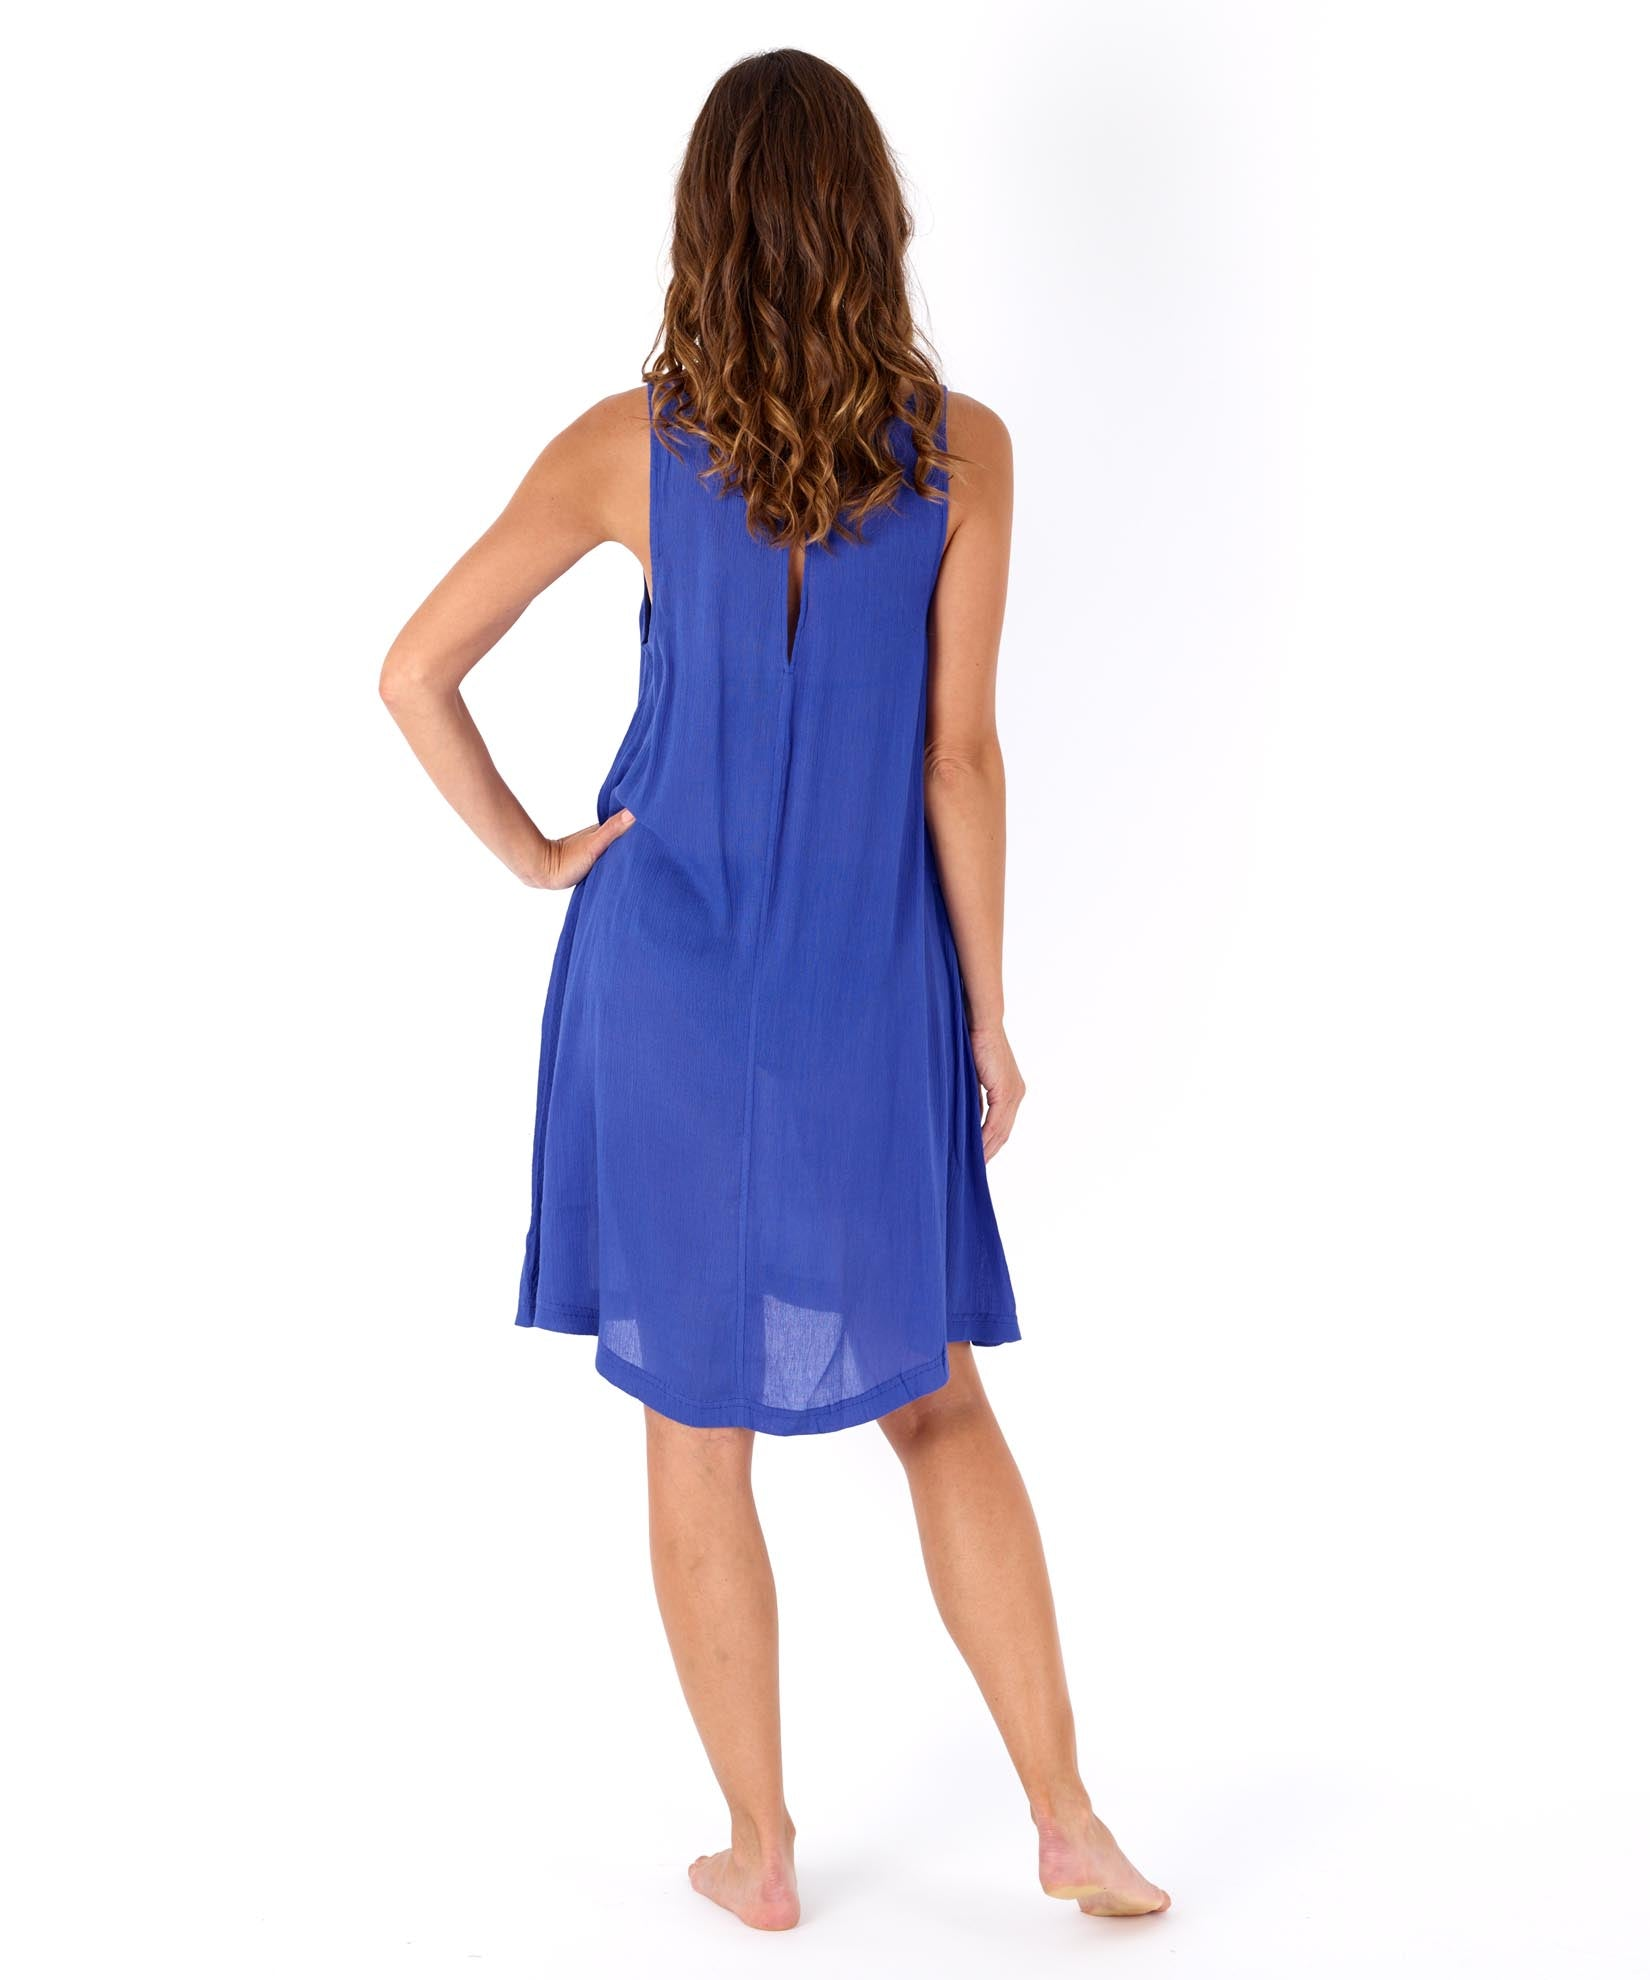 Brilliant Blue - Solid Crinkle Mini Dress